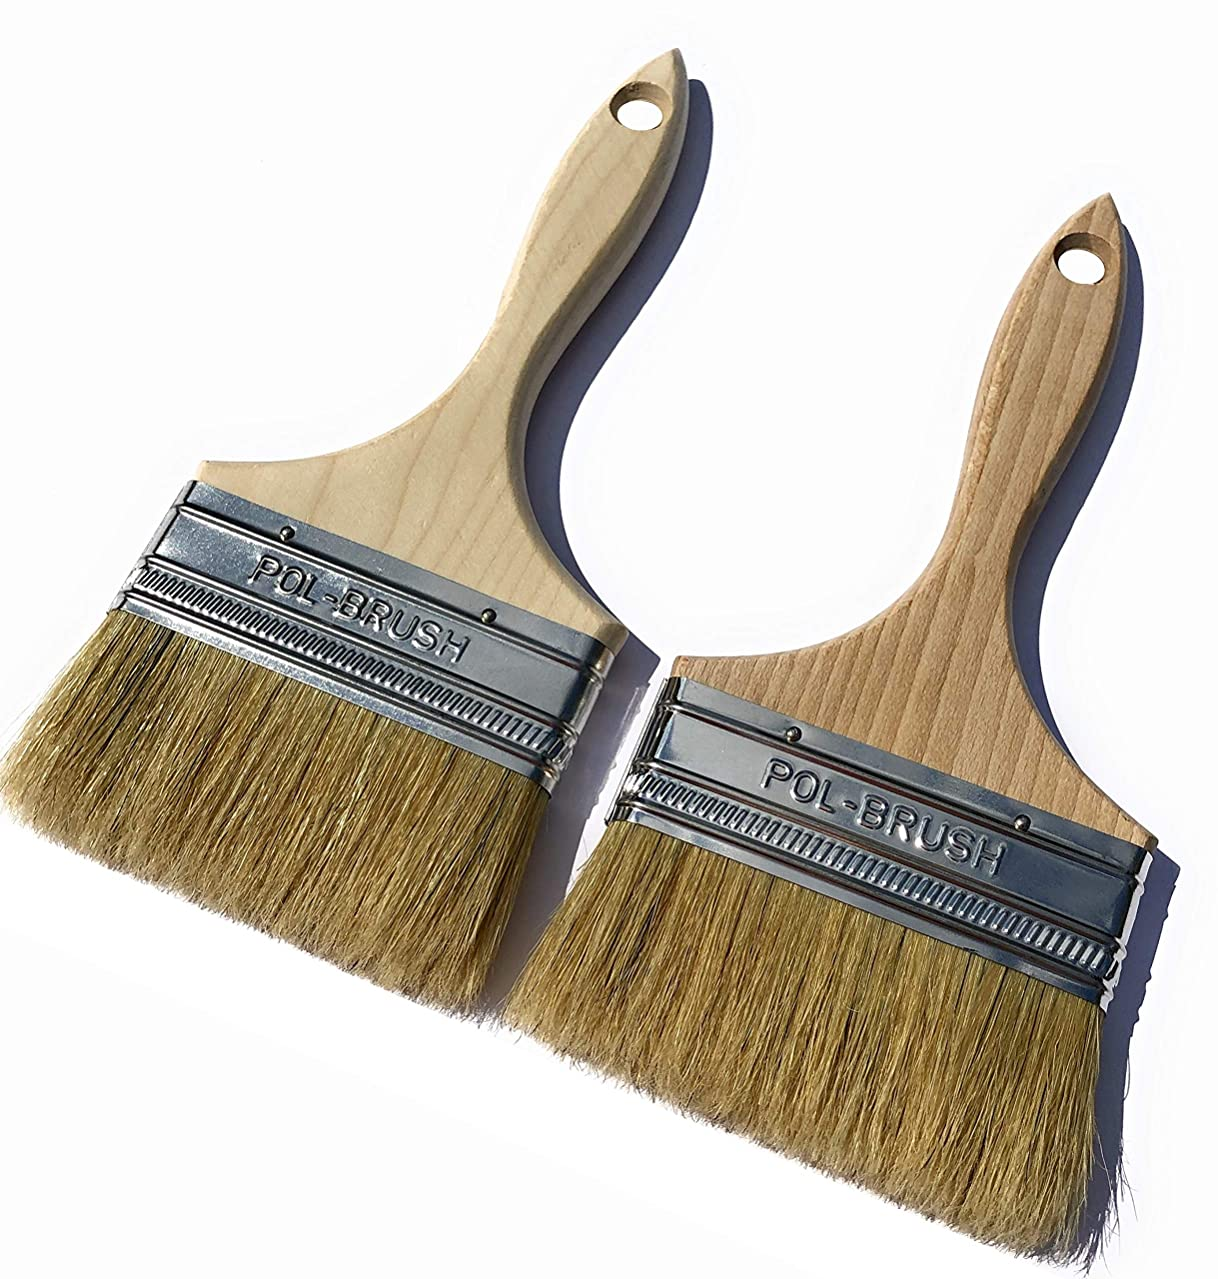 2 Pack - 4 inch European Paint Brushes - Natural Bristle/Wood Handle - for Professional & Amateur Paint Job; for All Latex & Oil Base Paints, Stains, Varnish, Shellac & Wax. (2Pack 4